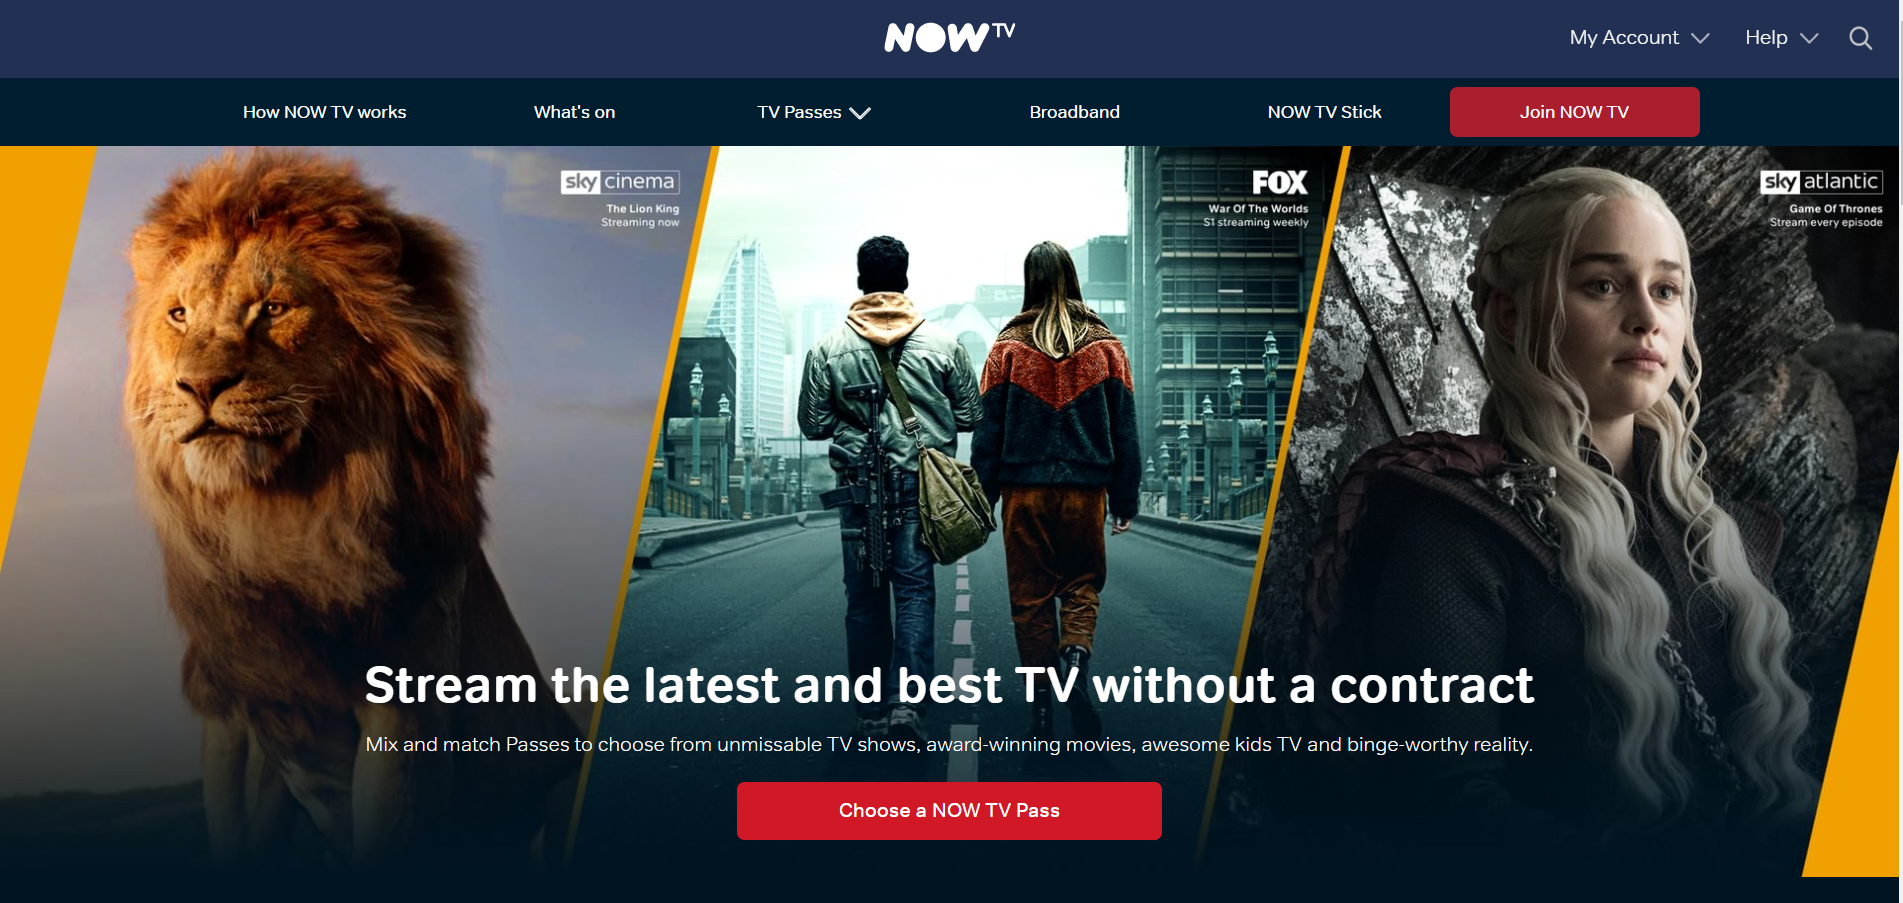 www.nowtv.com - best OTT platforms ideas, trends and inspirations in uk